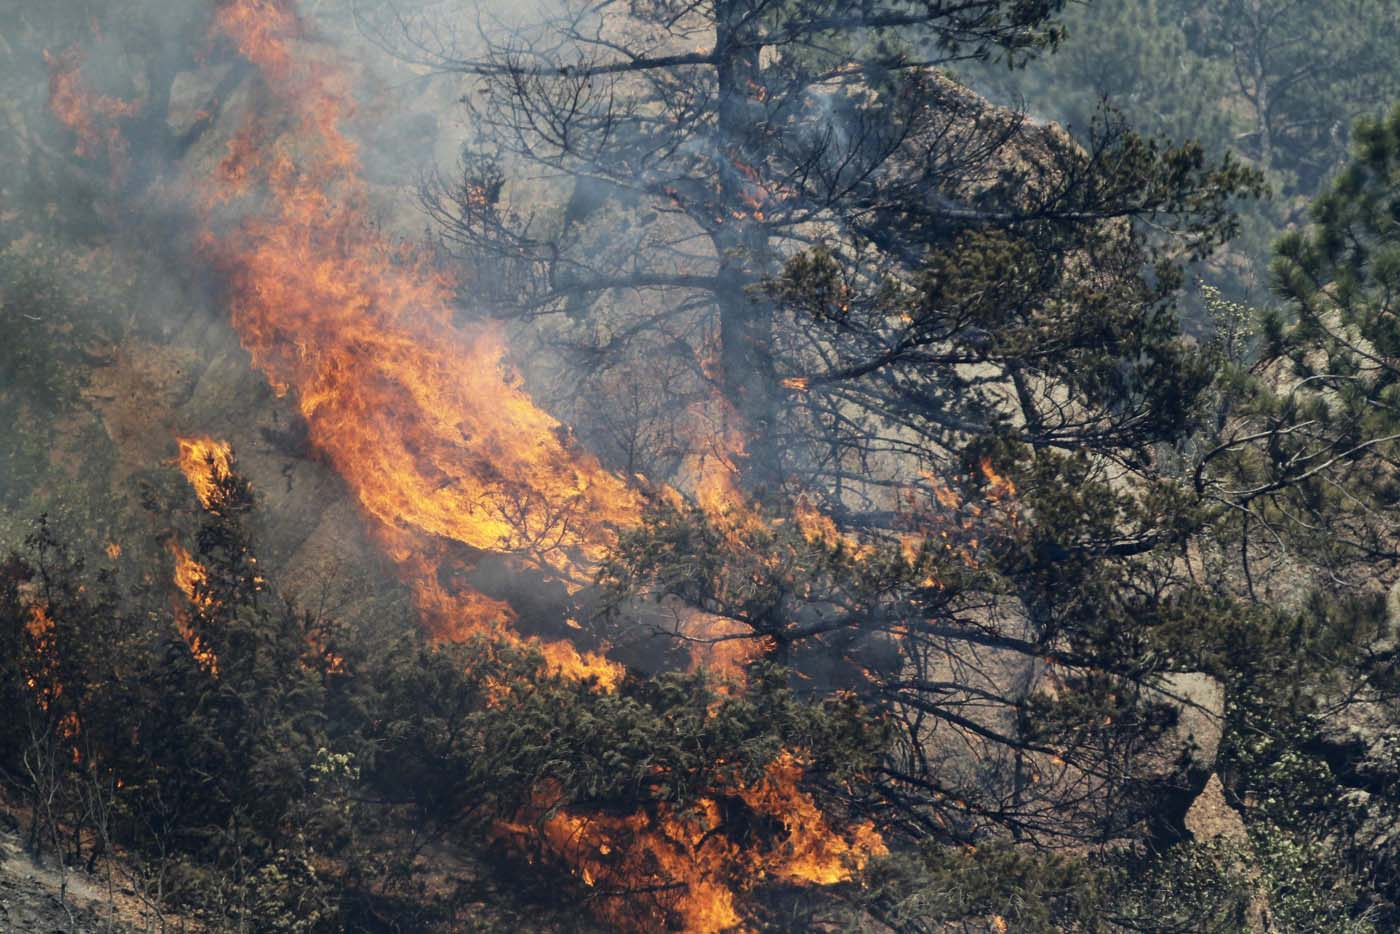 JUNE 26: A tree erupts into flames in the Waldo Canyon fire west of Colorado Springs, Colorado June 26, 2012. (Rick Wilking/Reuters)